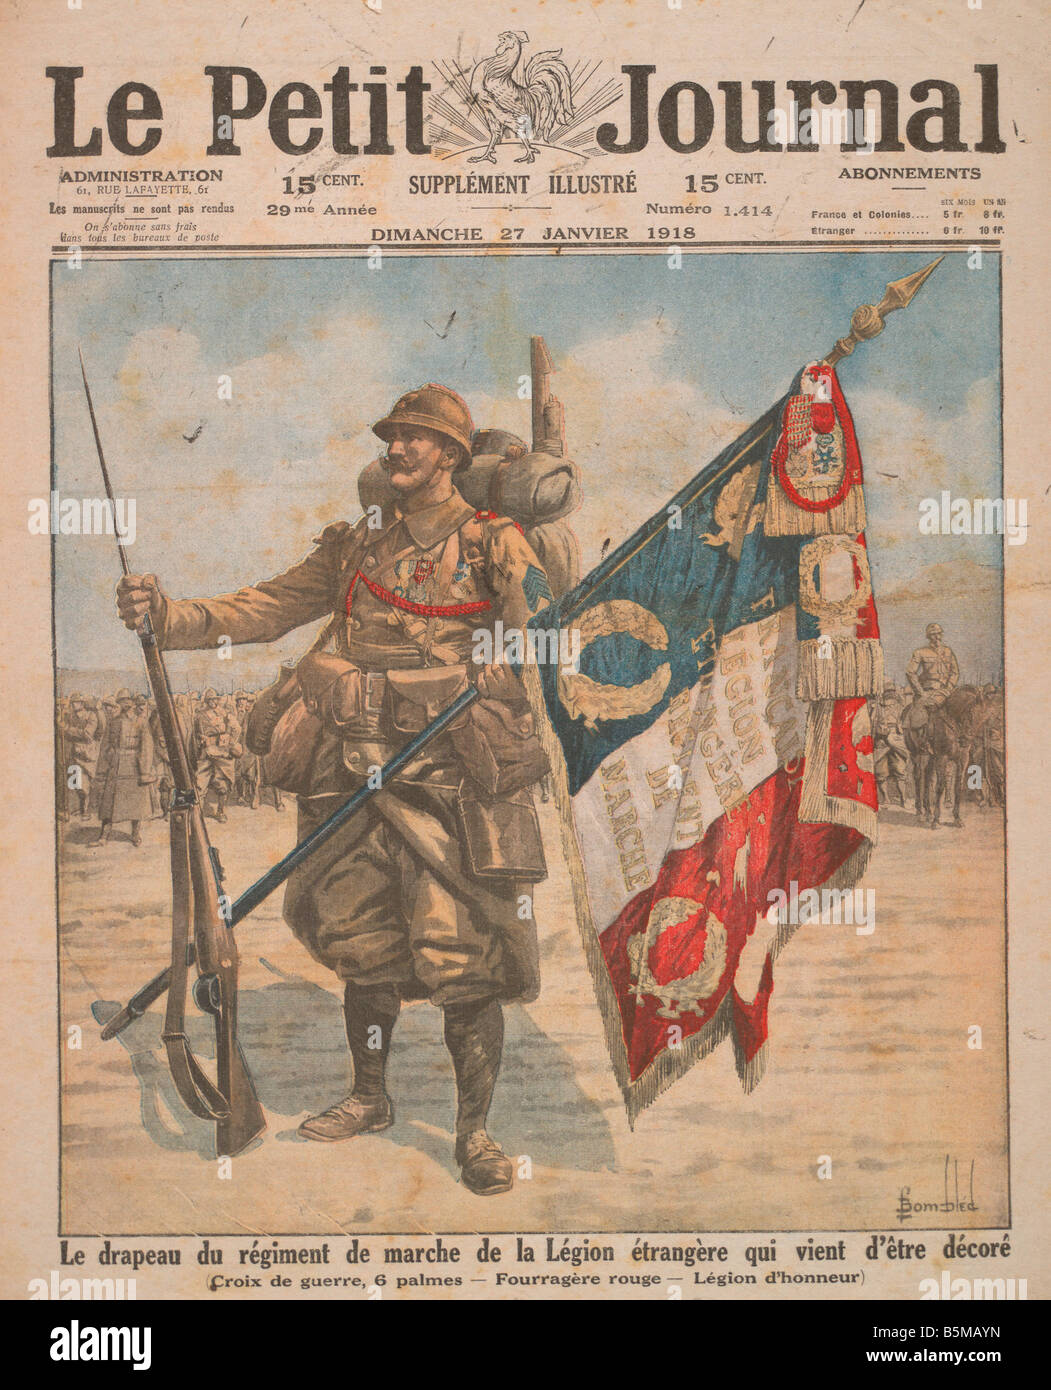 2 M70 F1 1918 E Foreign Legion Petit Journal 1918 Military Countries France Foreign Legion Legion etrangere made - Stock Image